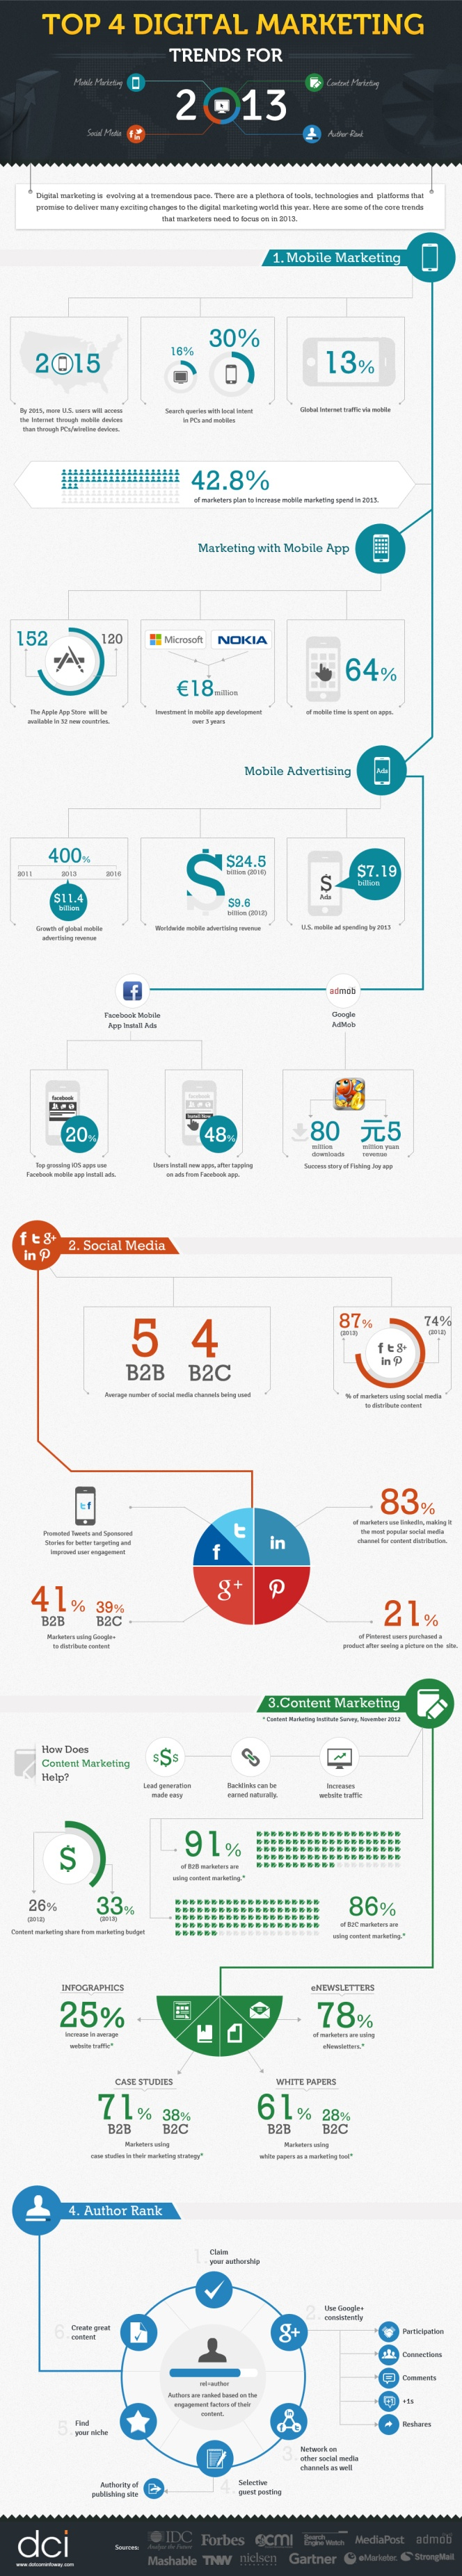 Top 4 #DigitalMarketing Trends for 2013 [#Infographic]